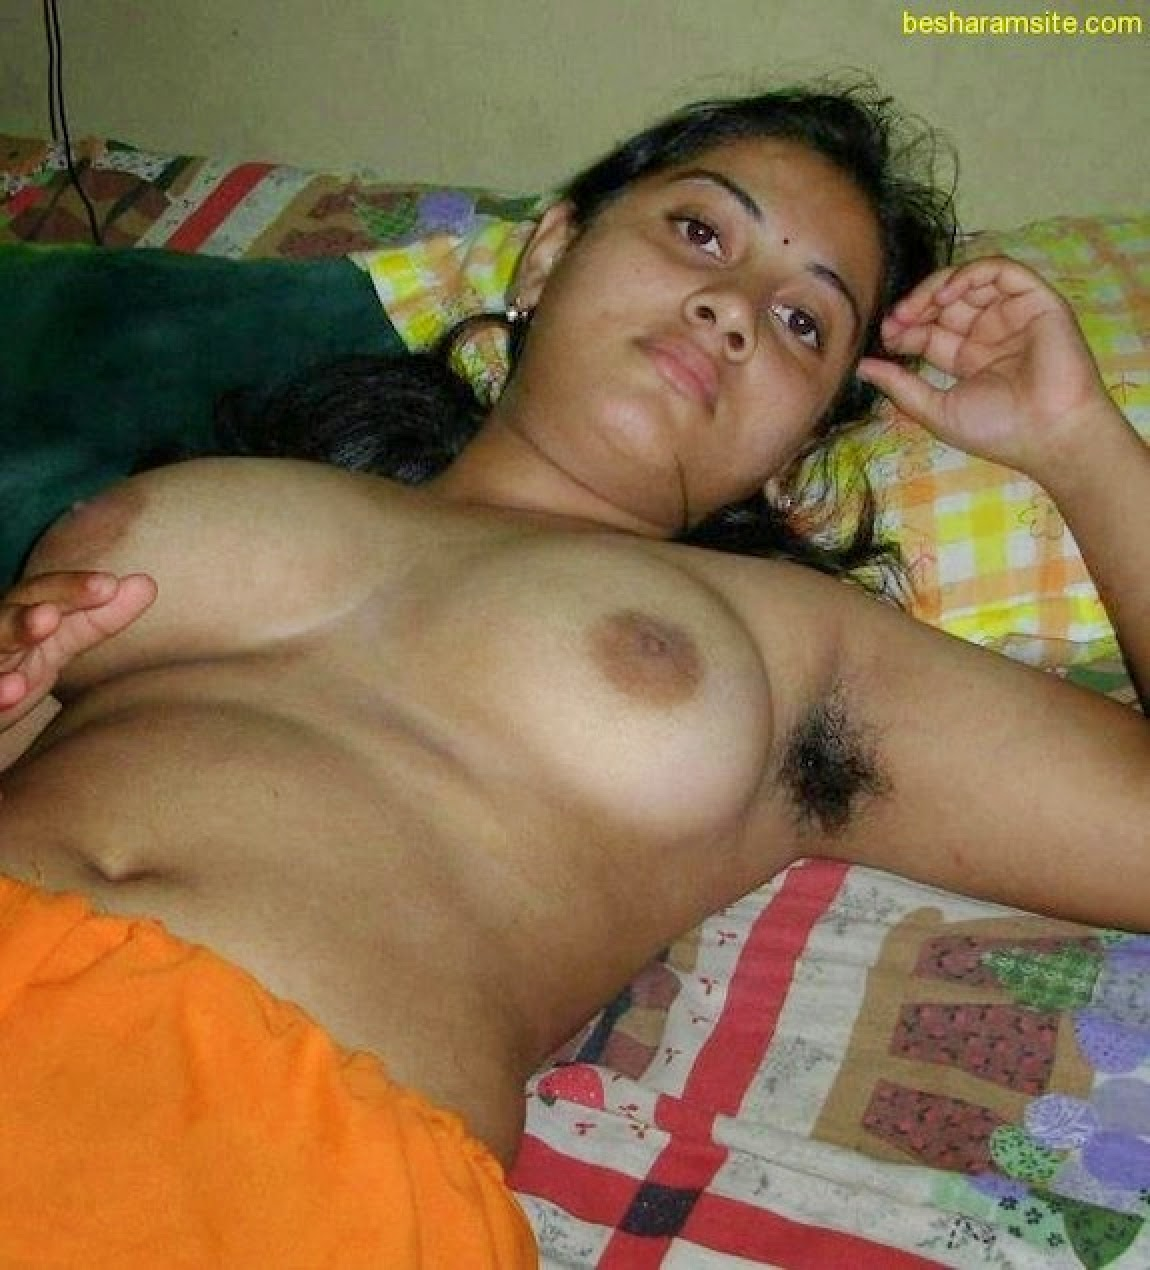 Naked desi girl images hentai galleries